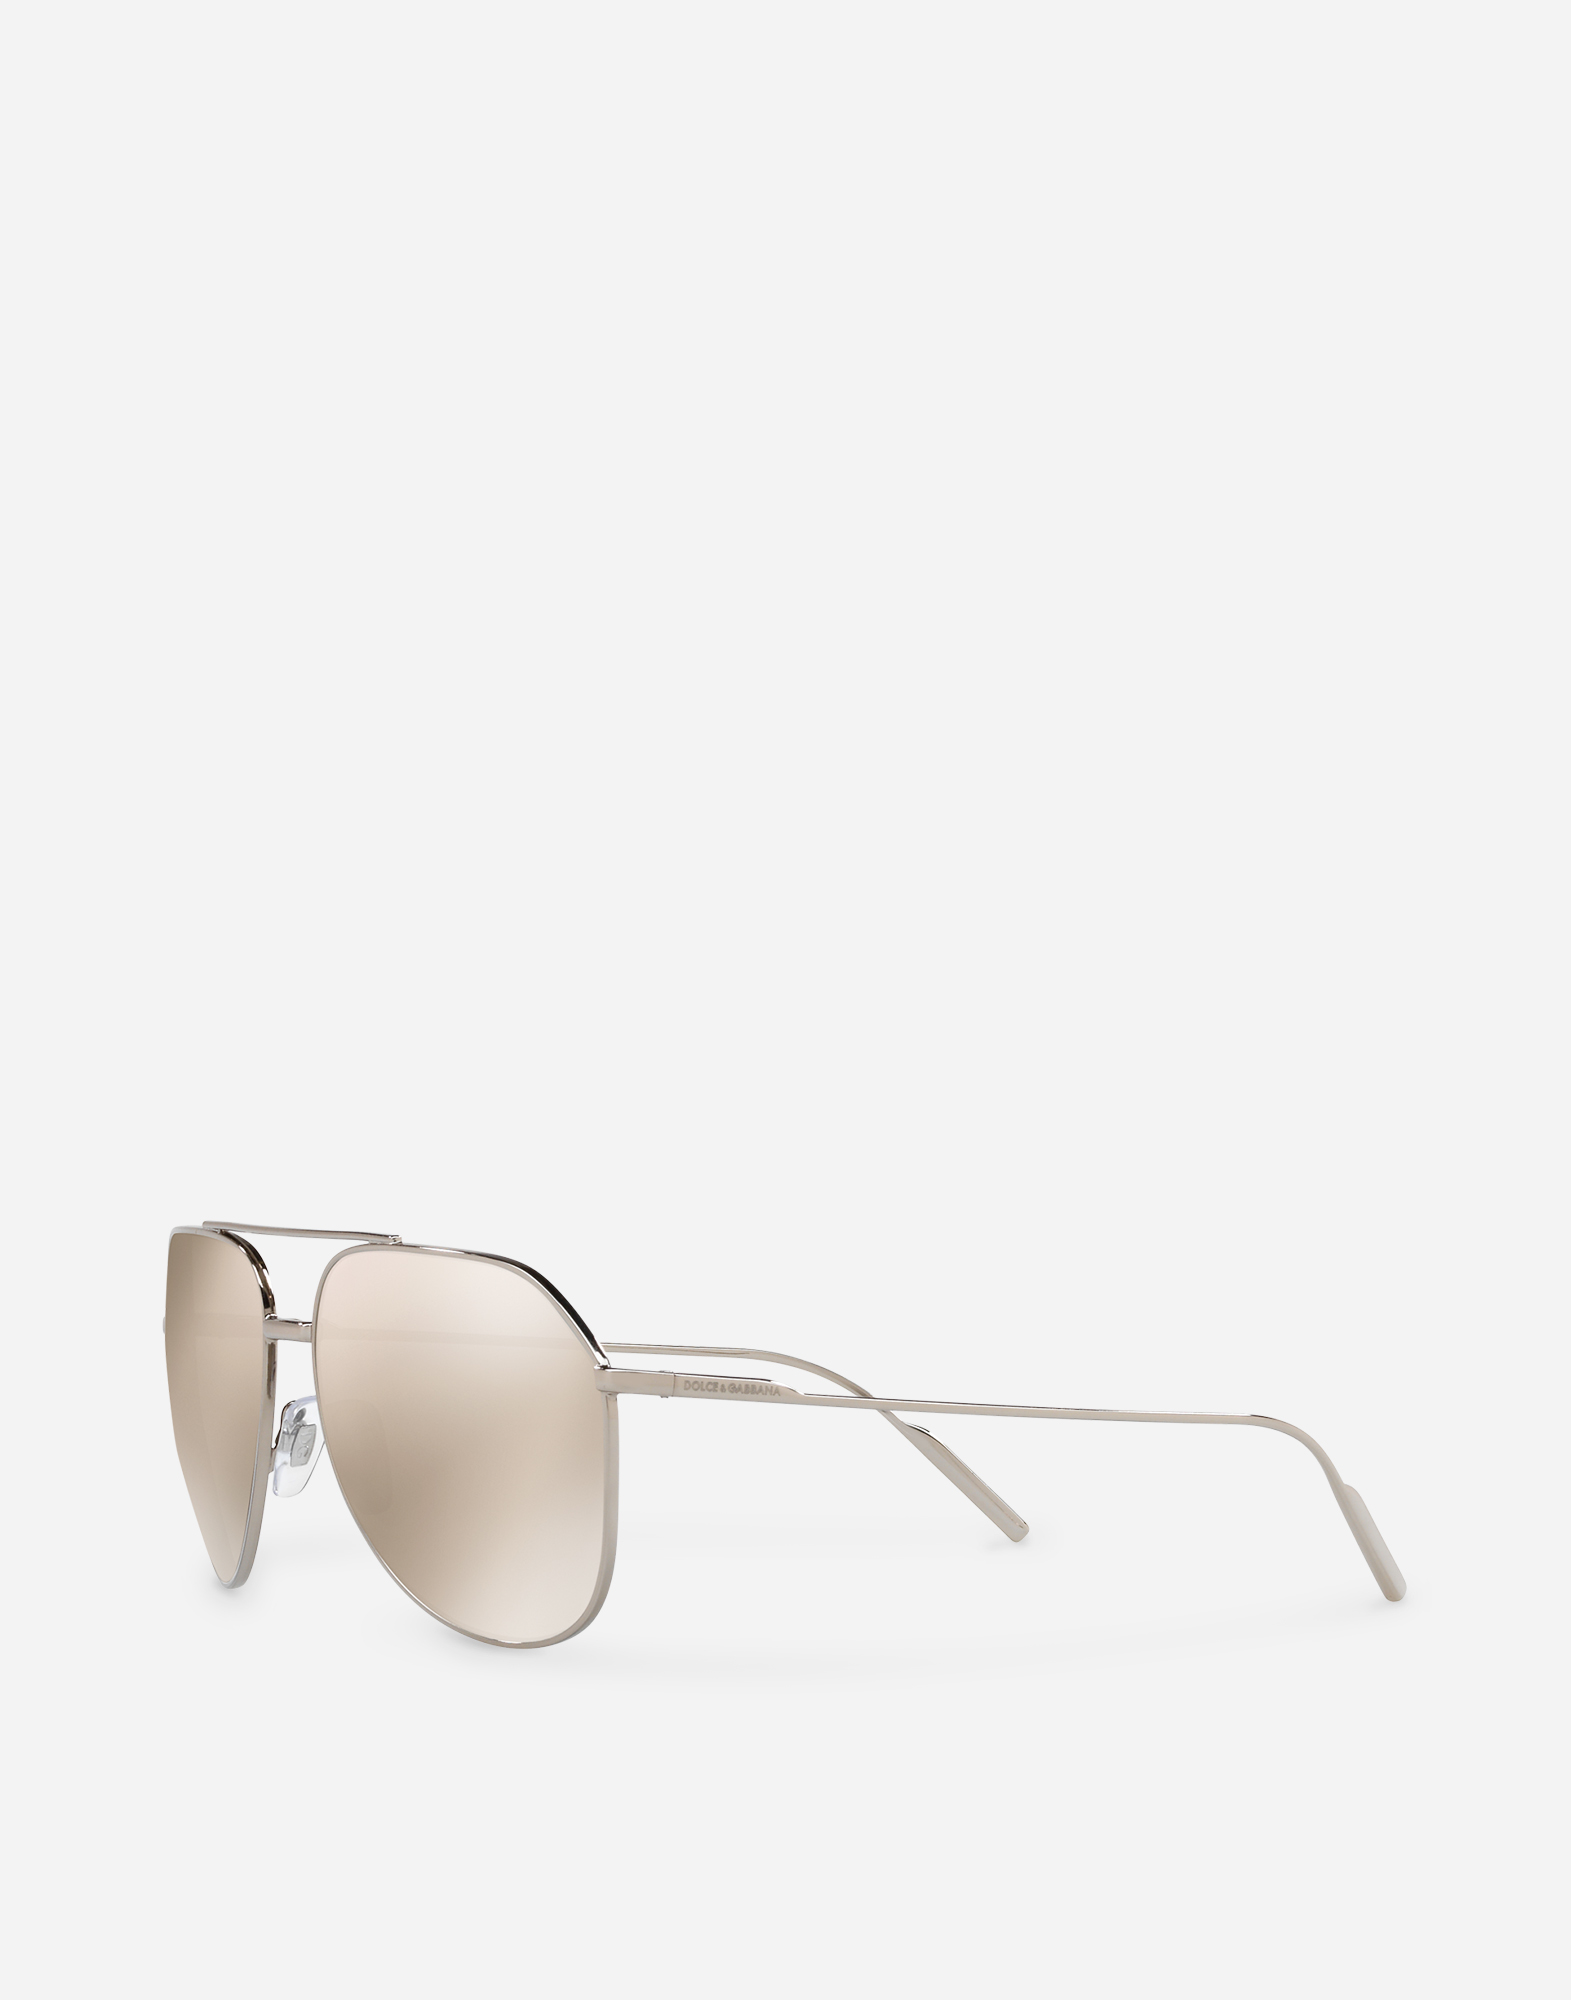 Dolce & Gabbana AVIATOR SUNGLASSES IN GOLD-PLATED METAL